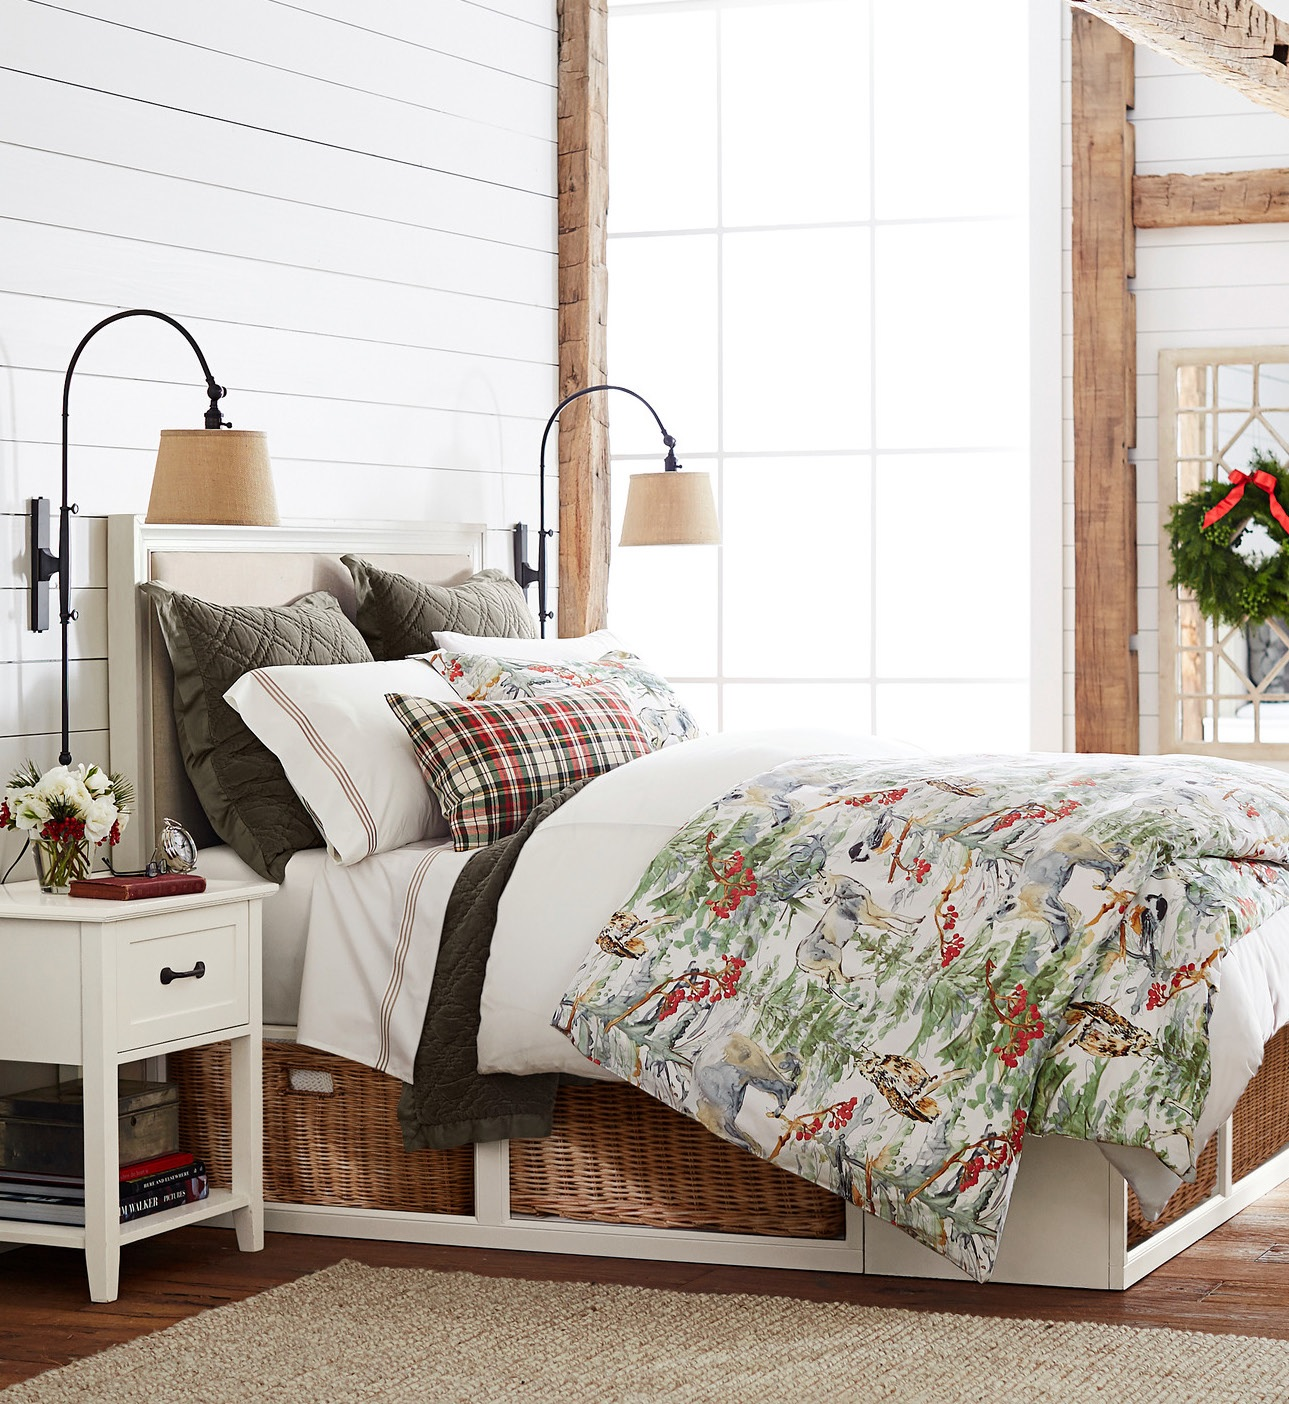 Christmas decor guest room bedding christmas all year it 39 s ever christmas - Pottery barn holiday bedding ...